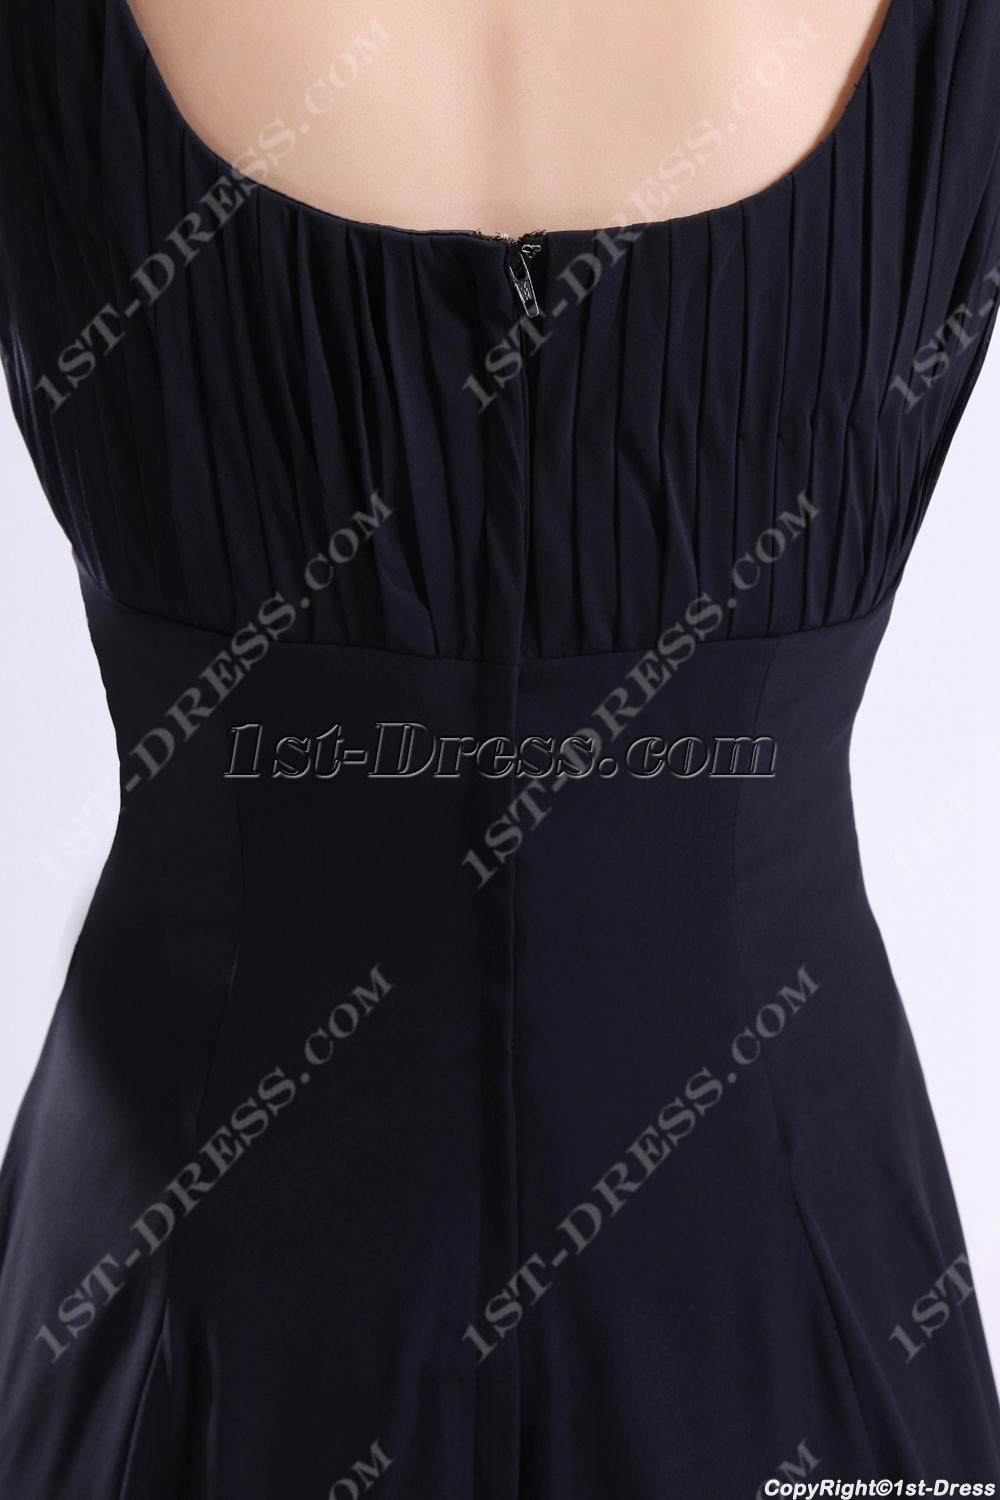 5ddc85057d prev  next. Specifications. Product Name  Square Chiffon Tea Length Little  Black Dress. ltem Code  xl003513. Category  Prom Dresses Little ...